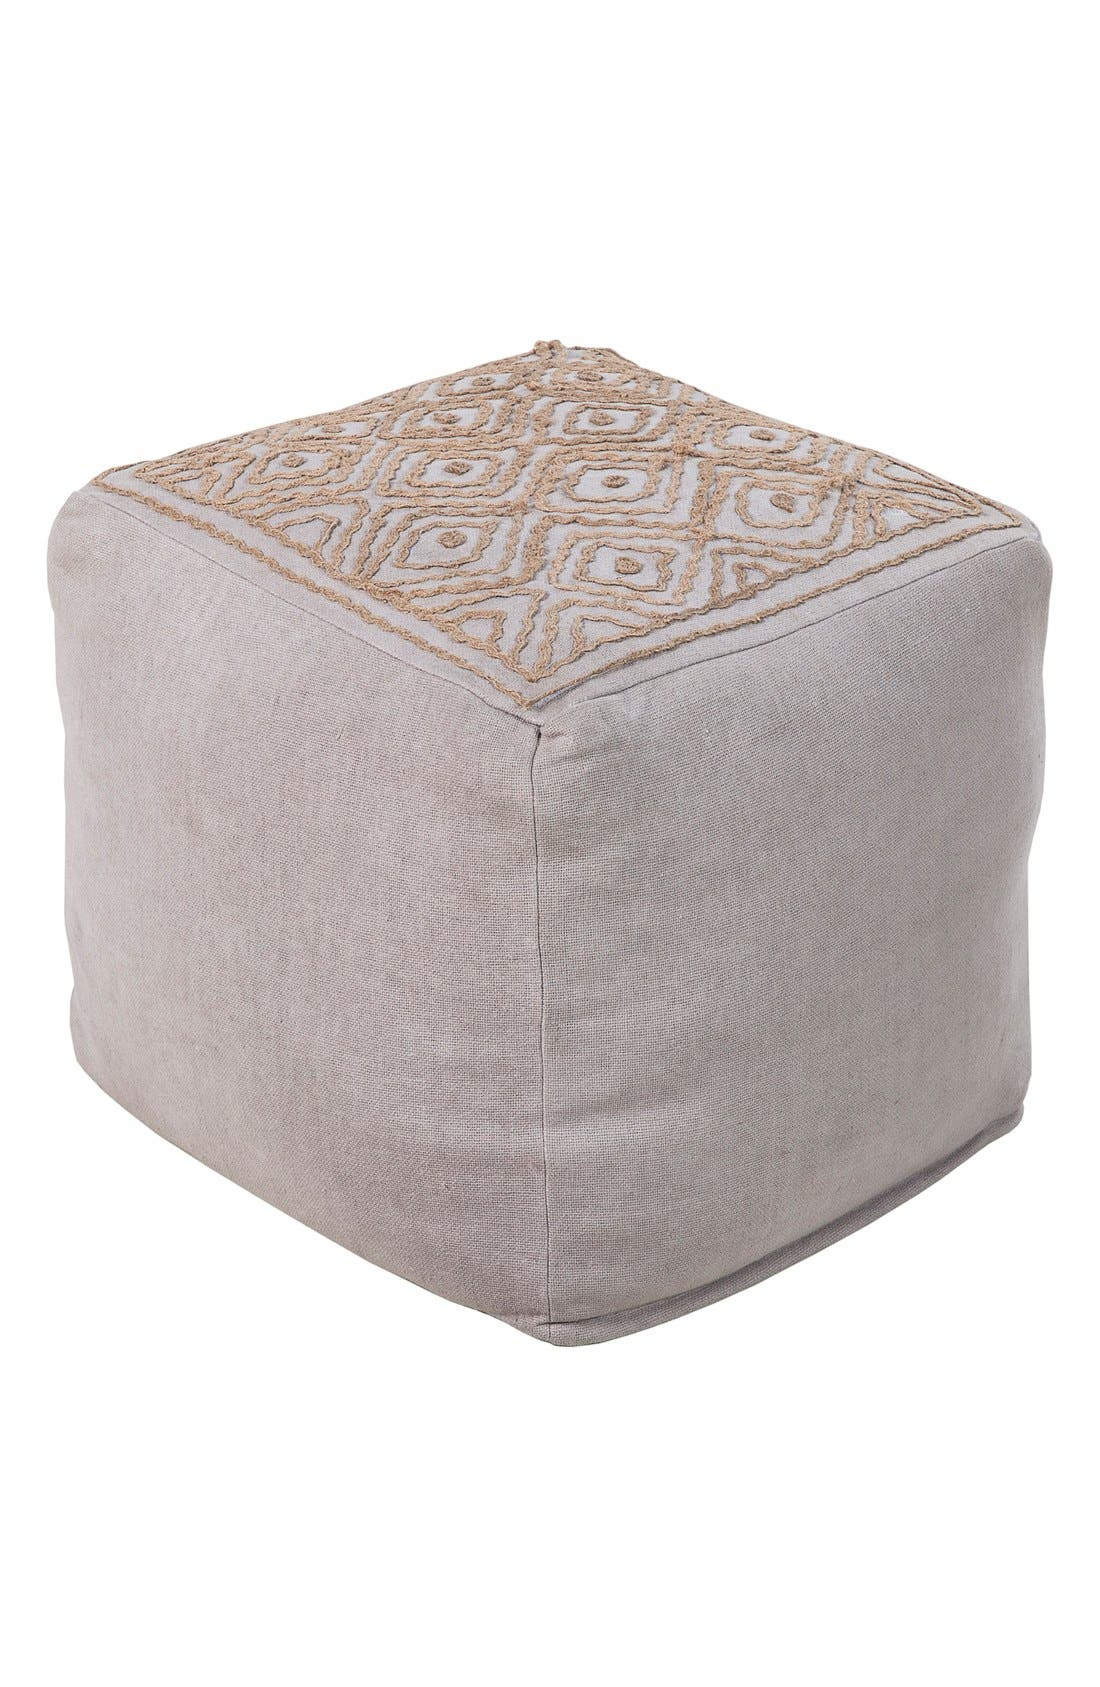 'Atlas' Pouf,                         Main,                         color, Grey/ Taupe